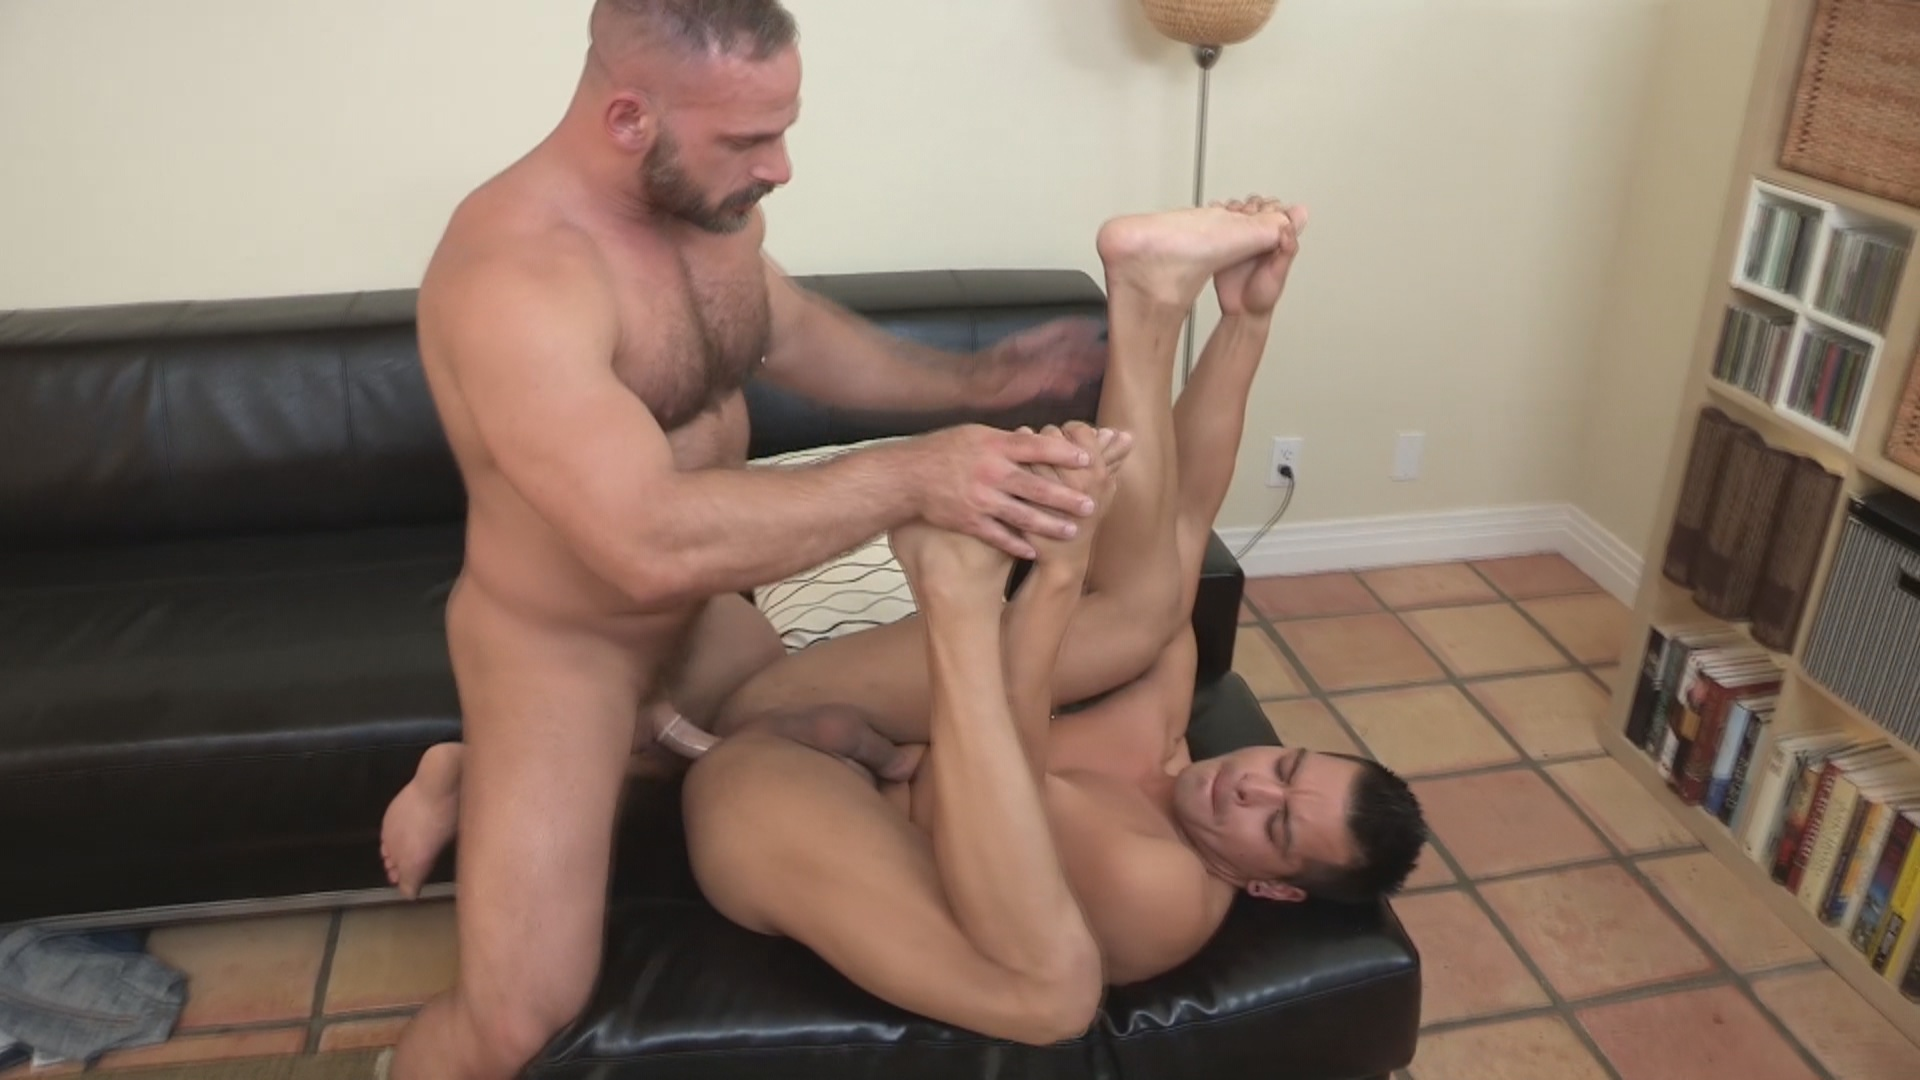 Smooth Meets Hairy 5 Xvideo gay